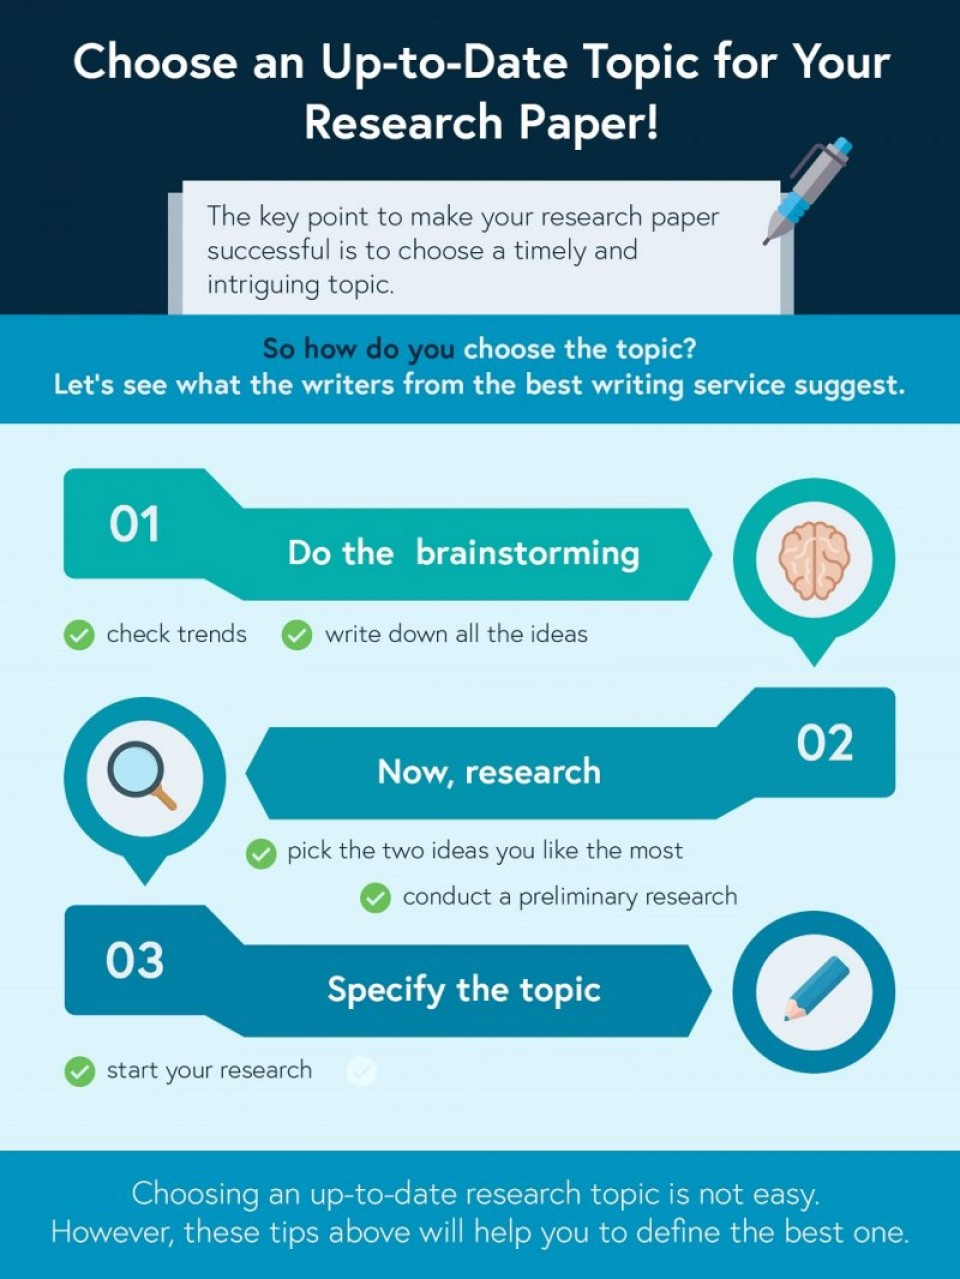 004 Infographic Research Paper Papers Writing Outstanding Service Cheapest Academic Services In India 960